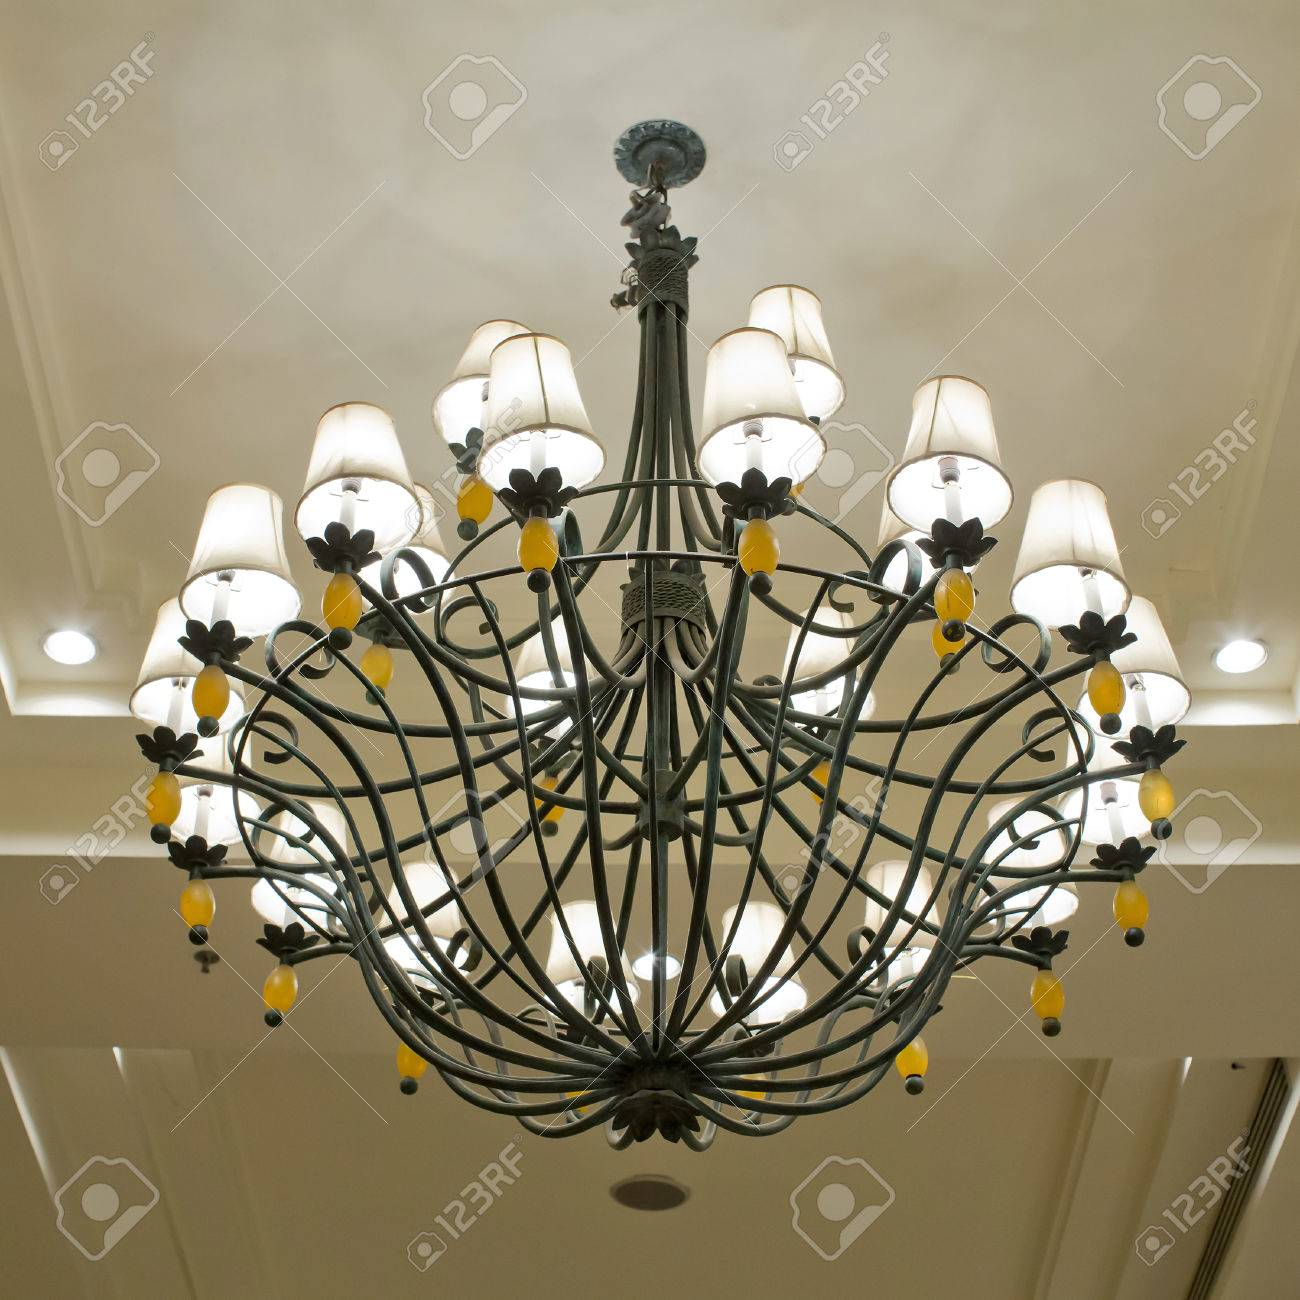 Vintage Art Deco Ceiling Lamp Stock Photo Picture And Royalty Free Image Image 23958745